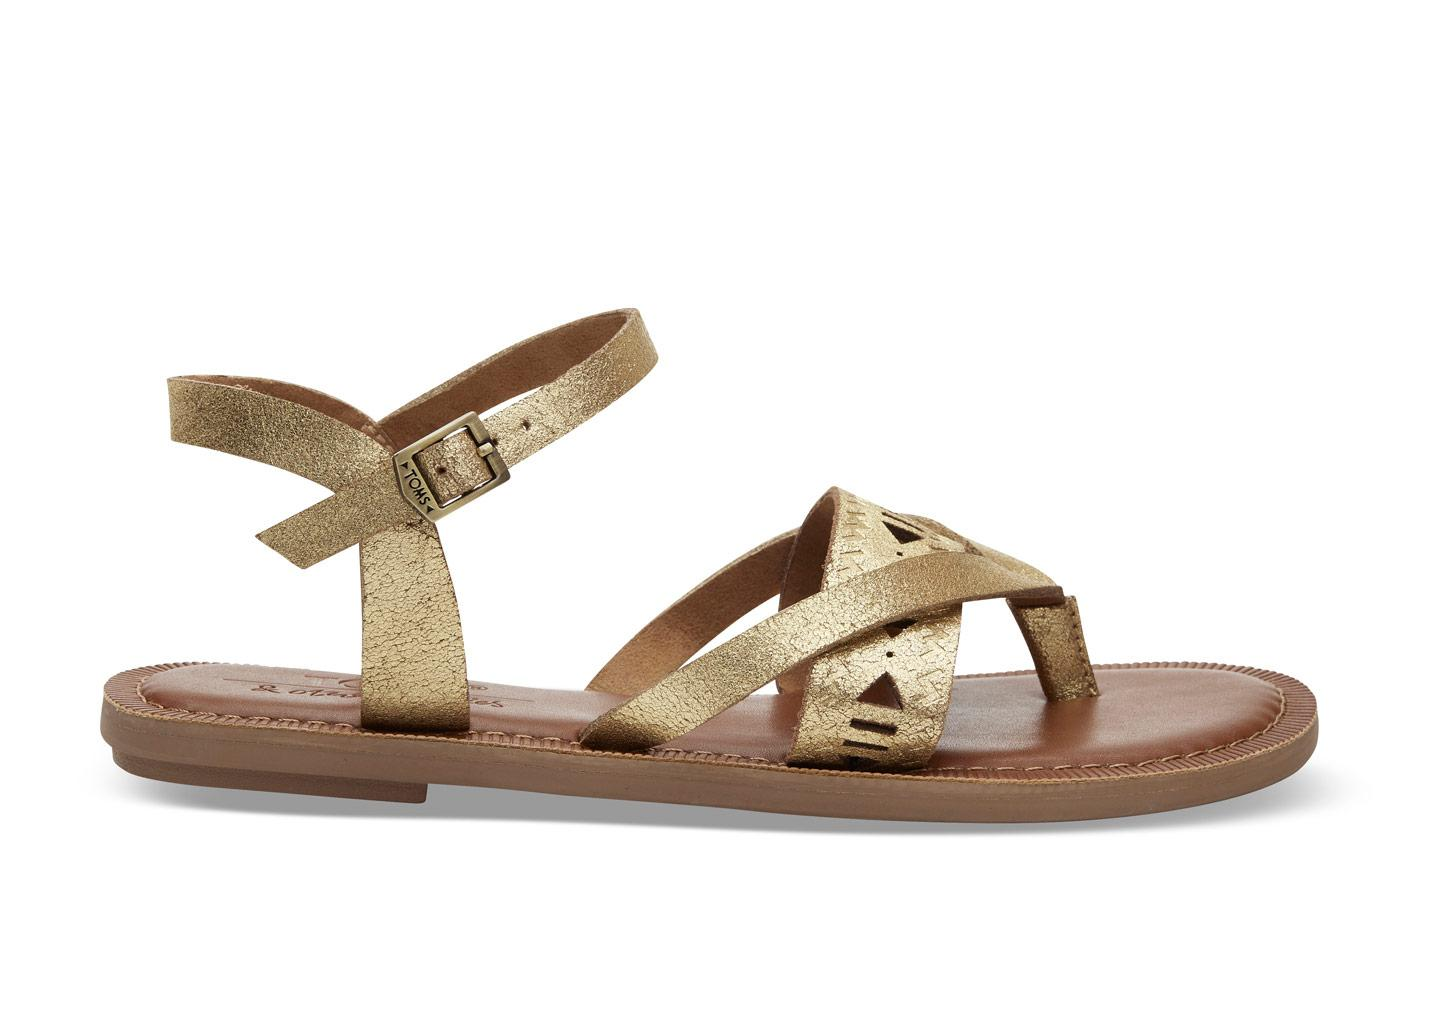 b3463edcaac TOMS Gold Metallic Suede Women s Lexie Sandals in Metallic - Lyst